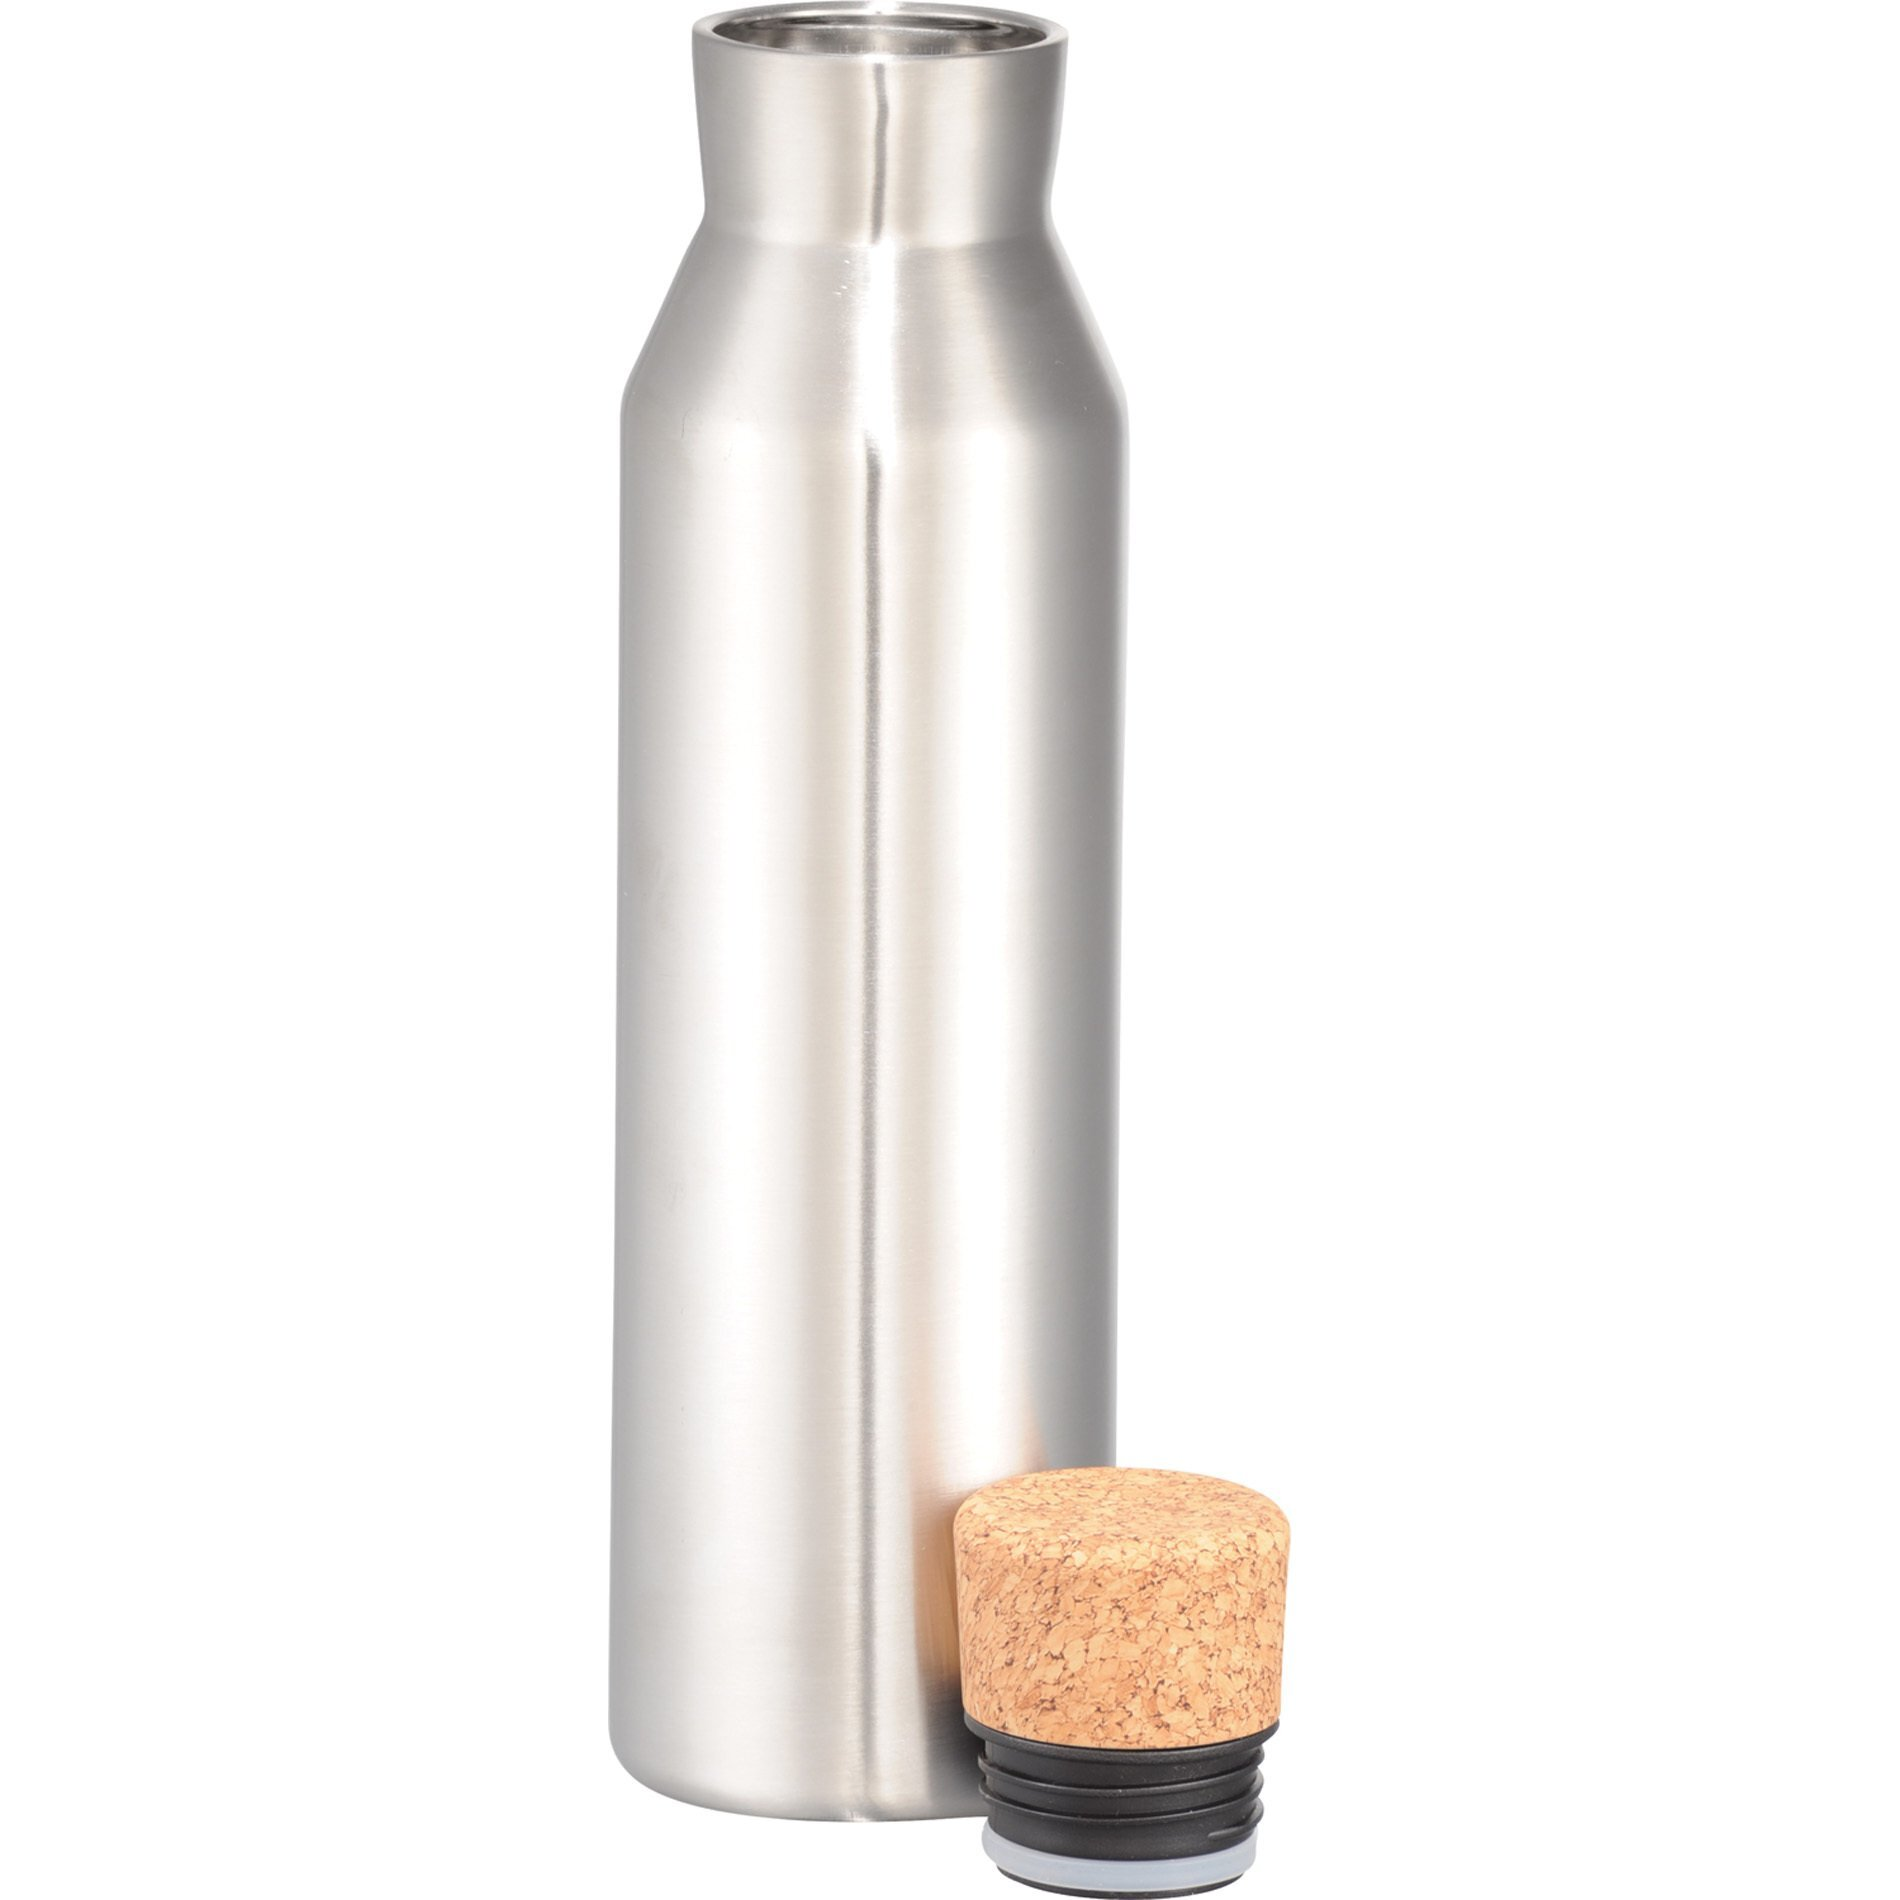 Norse Copper Vacuum Insulated Bottle w/ Cork Top, 20oz